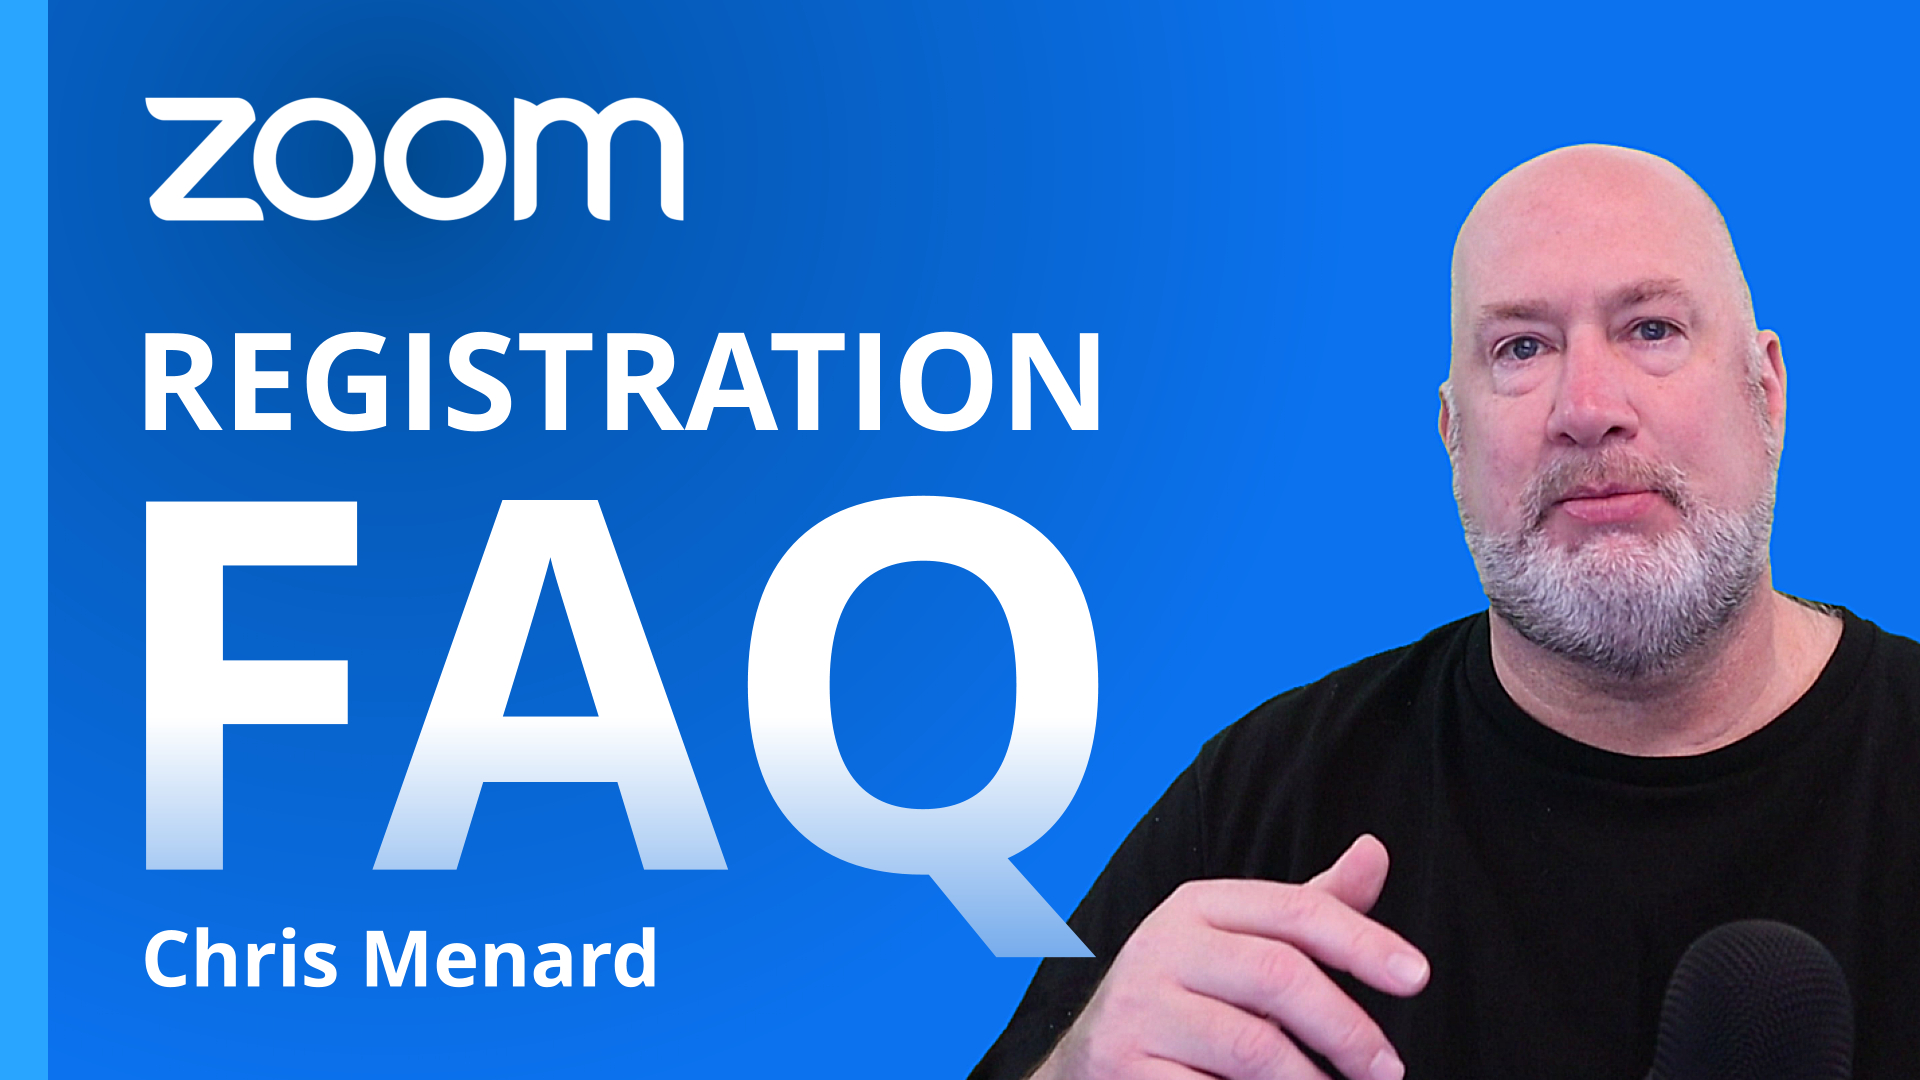 Zoom Meetings Registration | Top 10 questions answered | Zoom Registration Tutorial